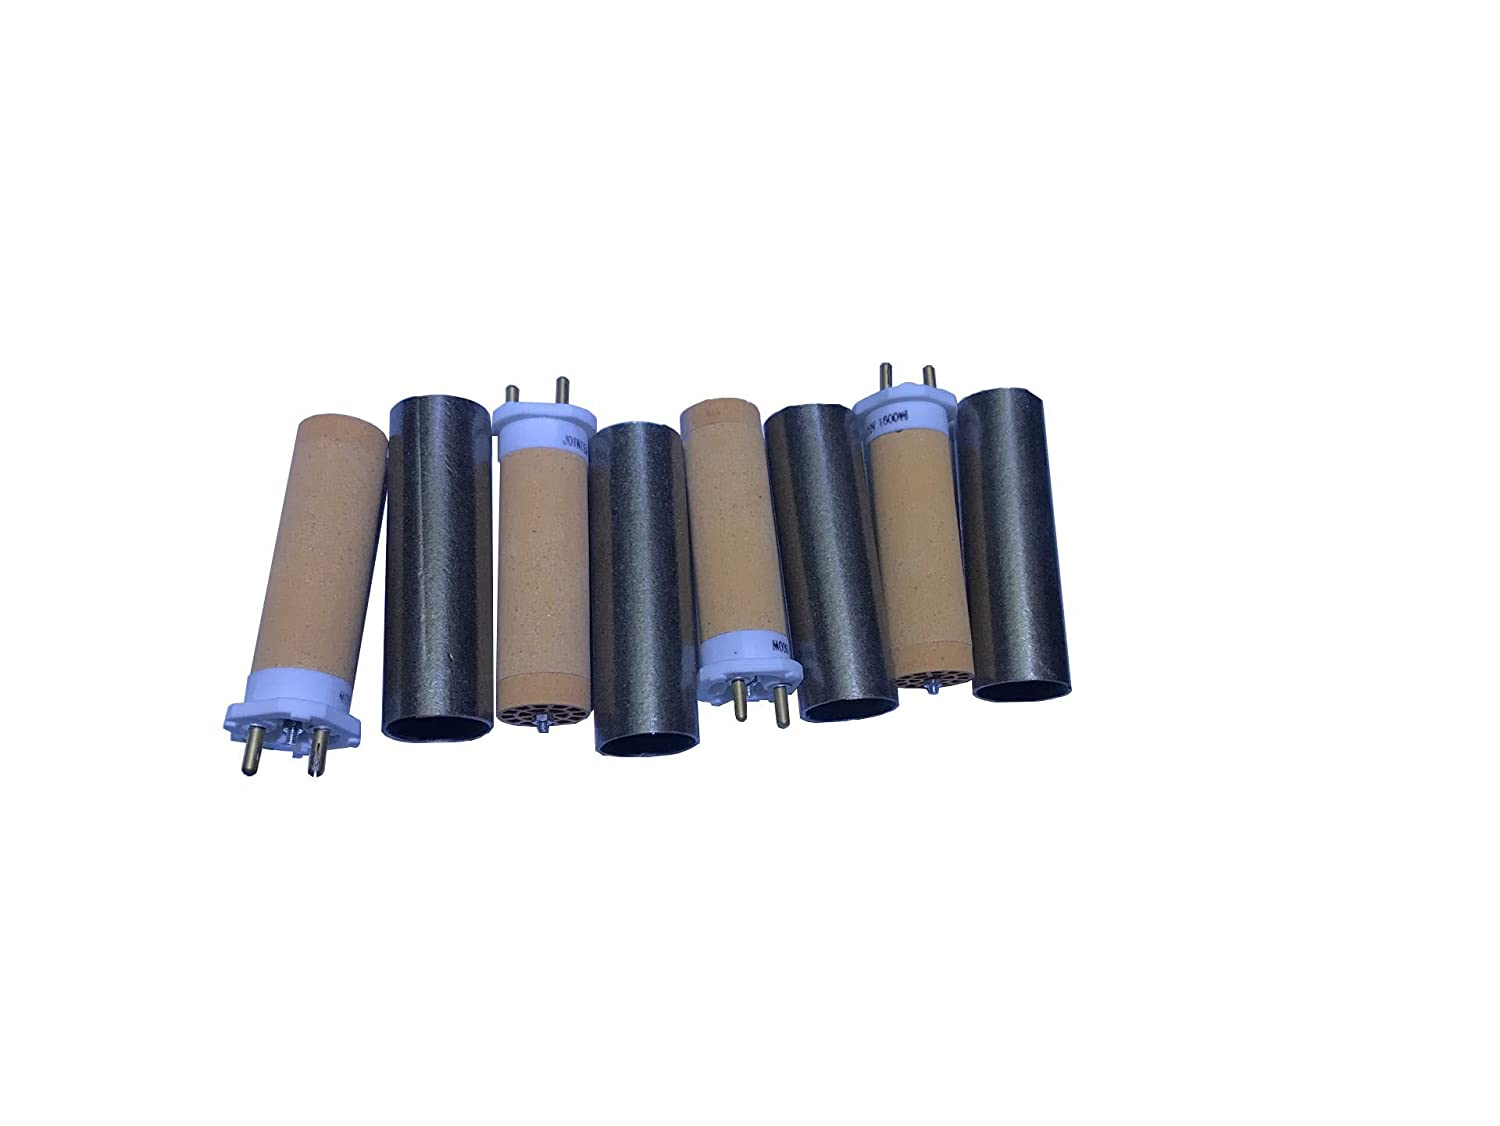 4 pcs heating elements